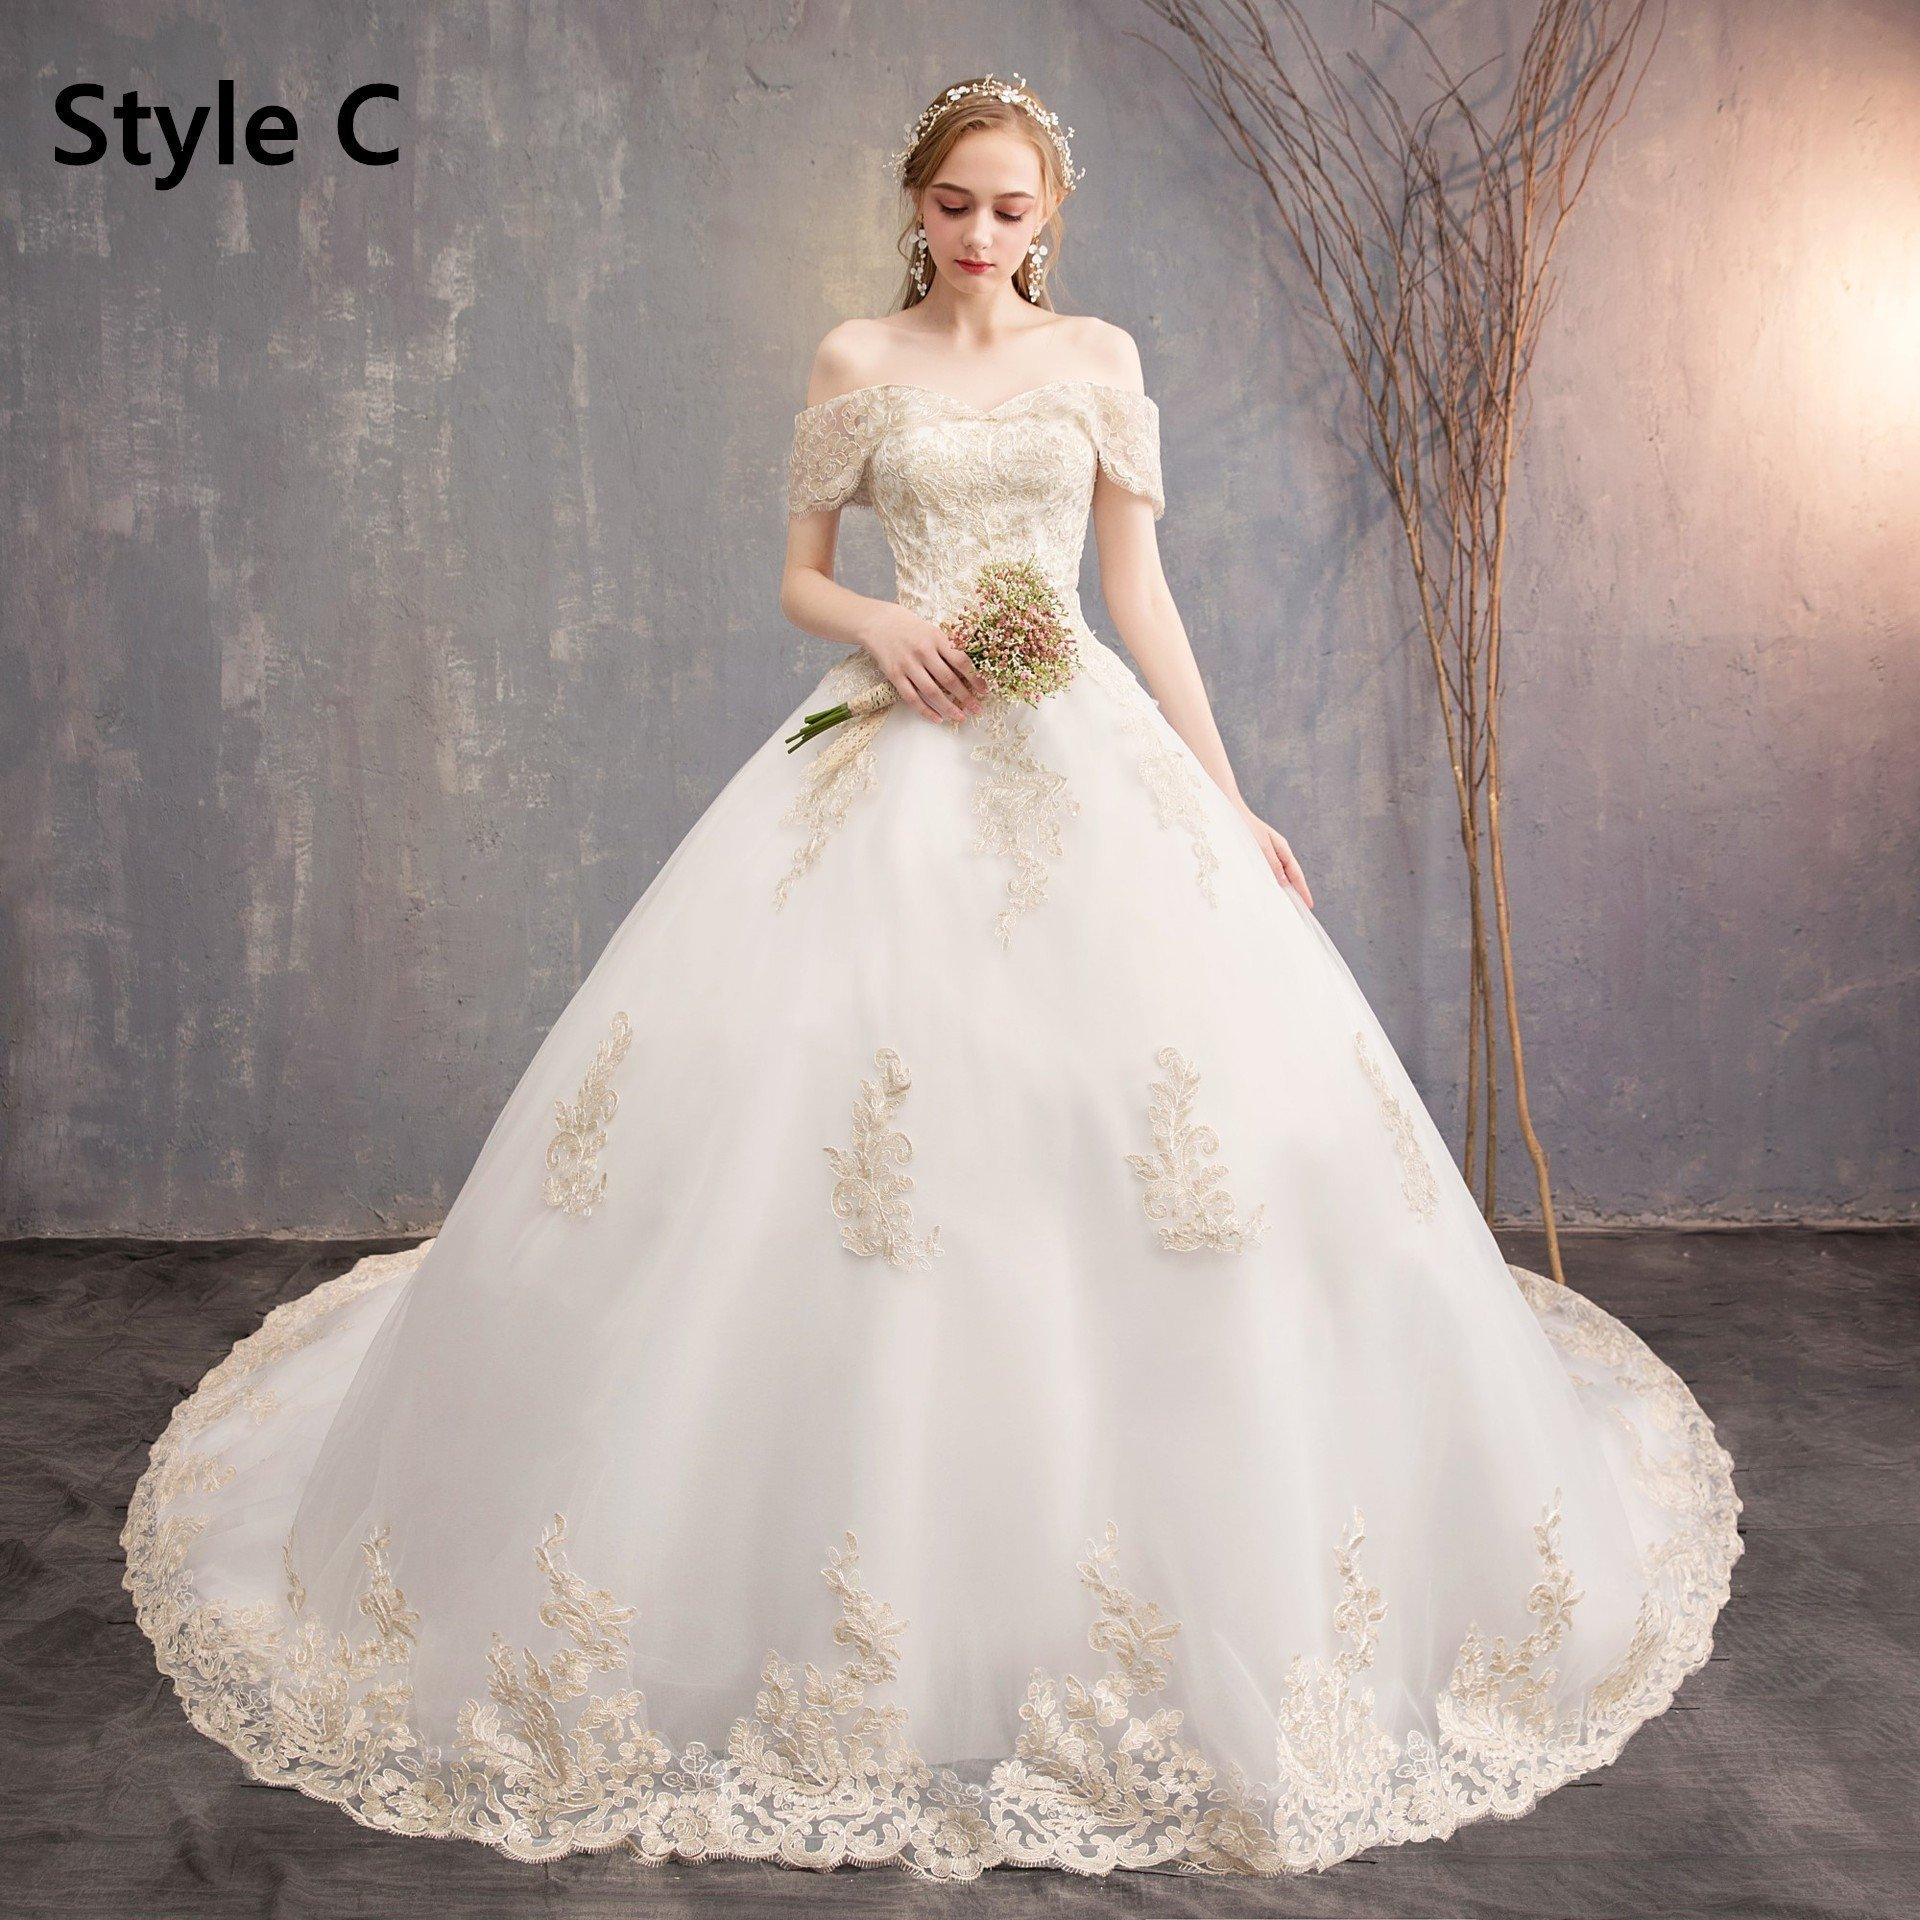 Best Wedding Dresses Lace Dresses Country Groom Attire Strapless Dress Wedding Guest Couple Outfits New Frock Rockabilly Wedding Dress Plus Size Maxi Dresses For Weddings